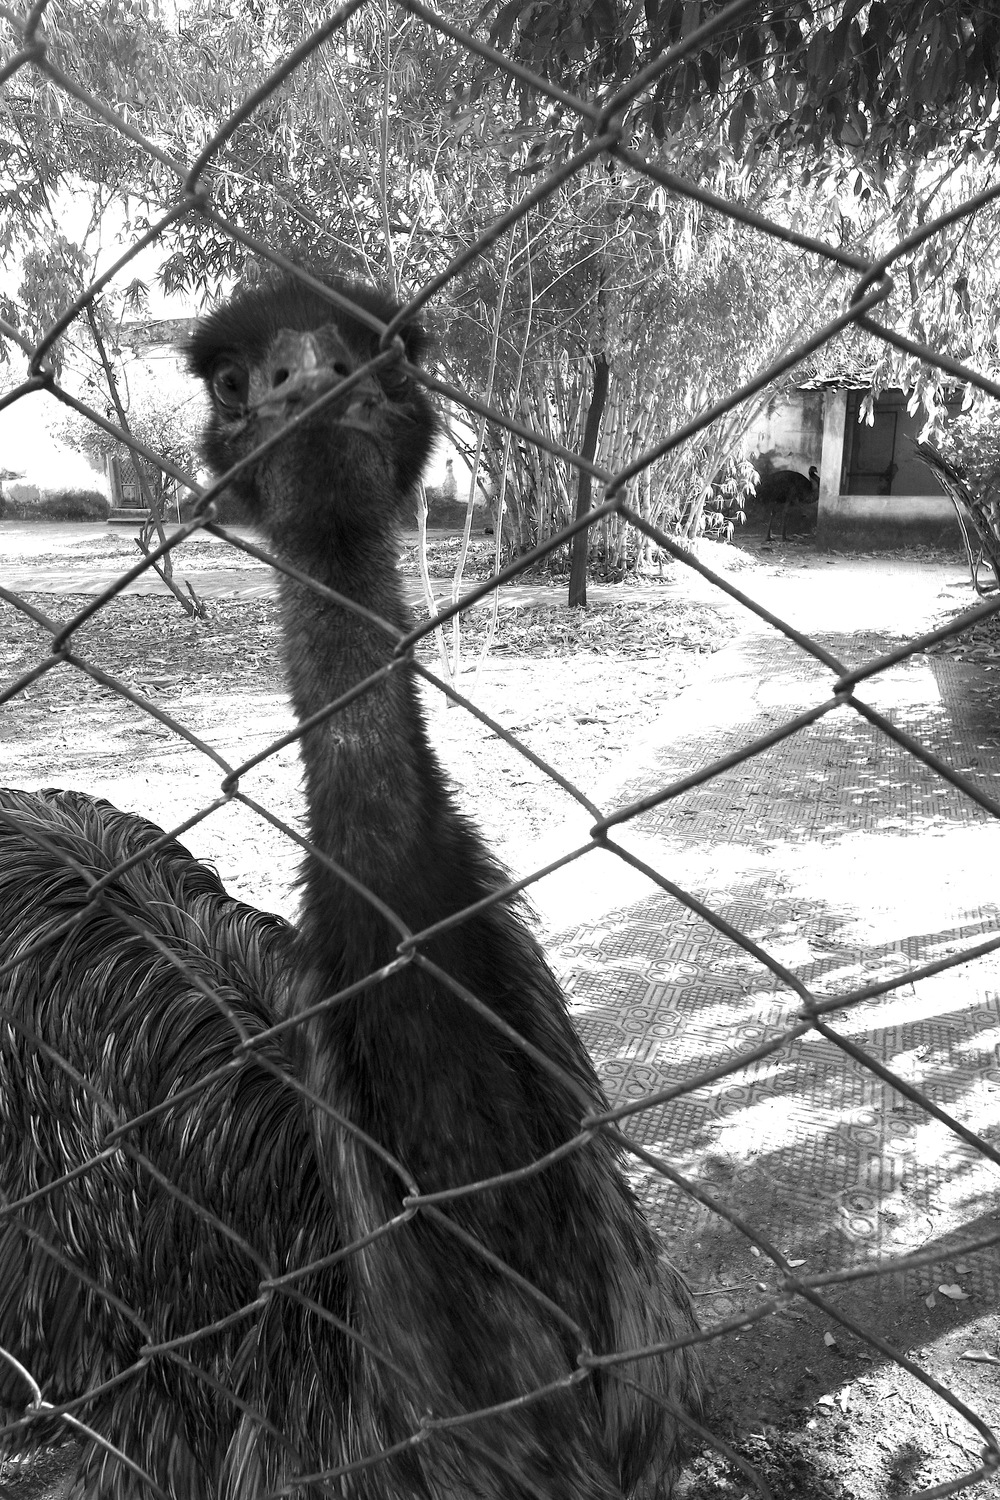 Keep your distance from the emu, part of the menagerie at Udai Bilas Palace